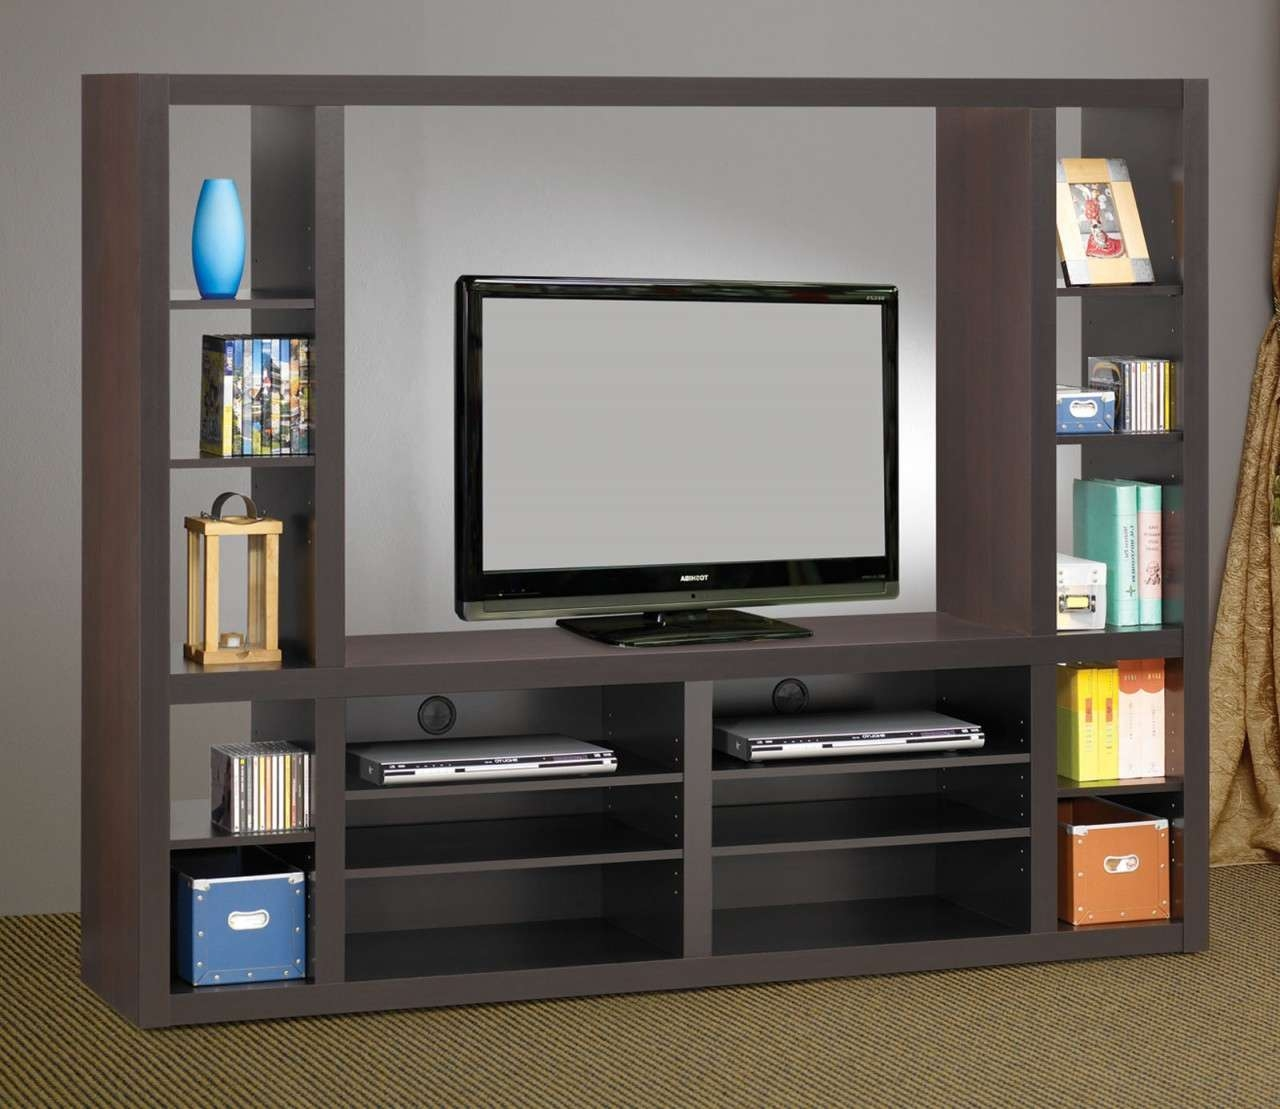 Wall Mounted Tv Cabinets For Flat Screens With Doors – Imanisr For Wall Mounted Tv Cabinets For Flat Screens With Doors (View 16 of 20)